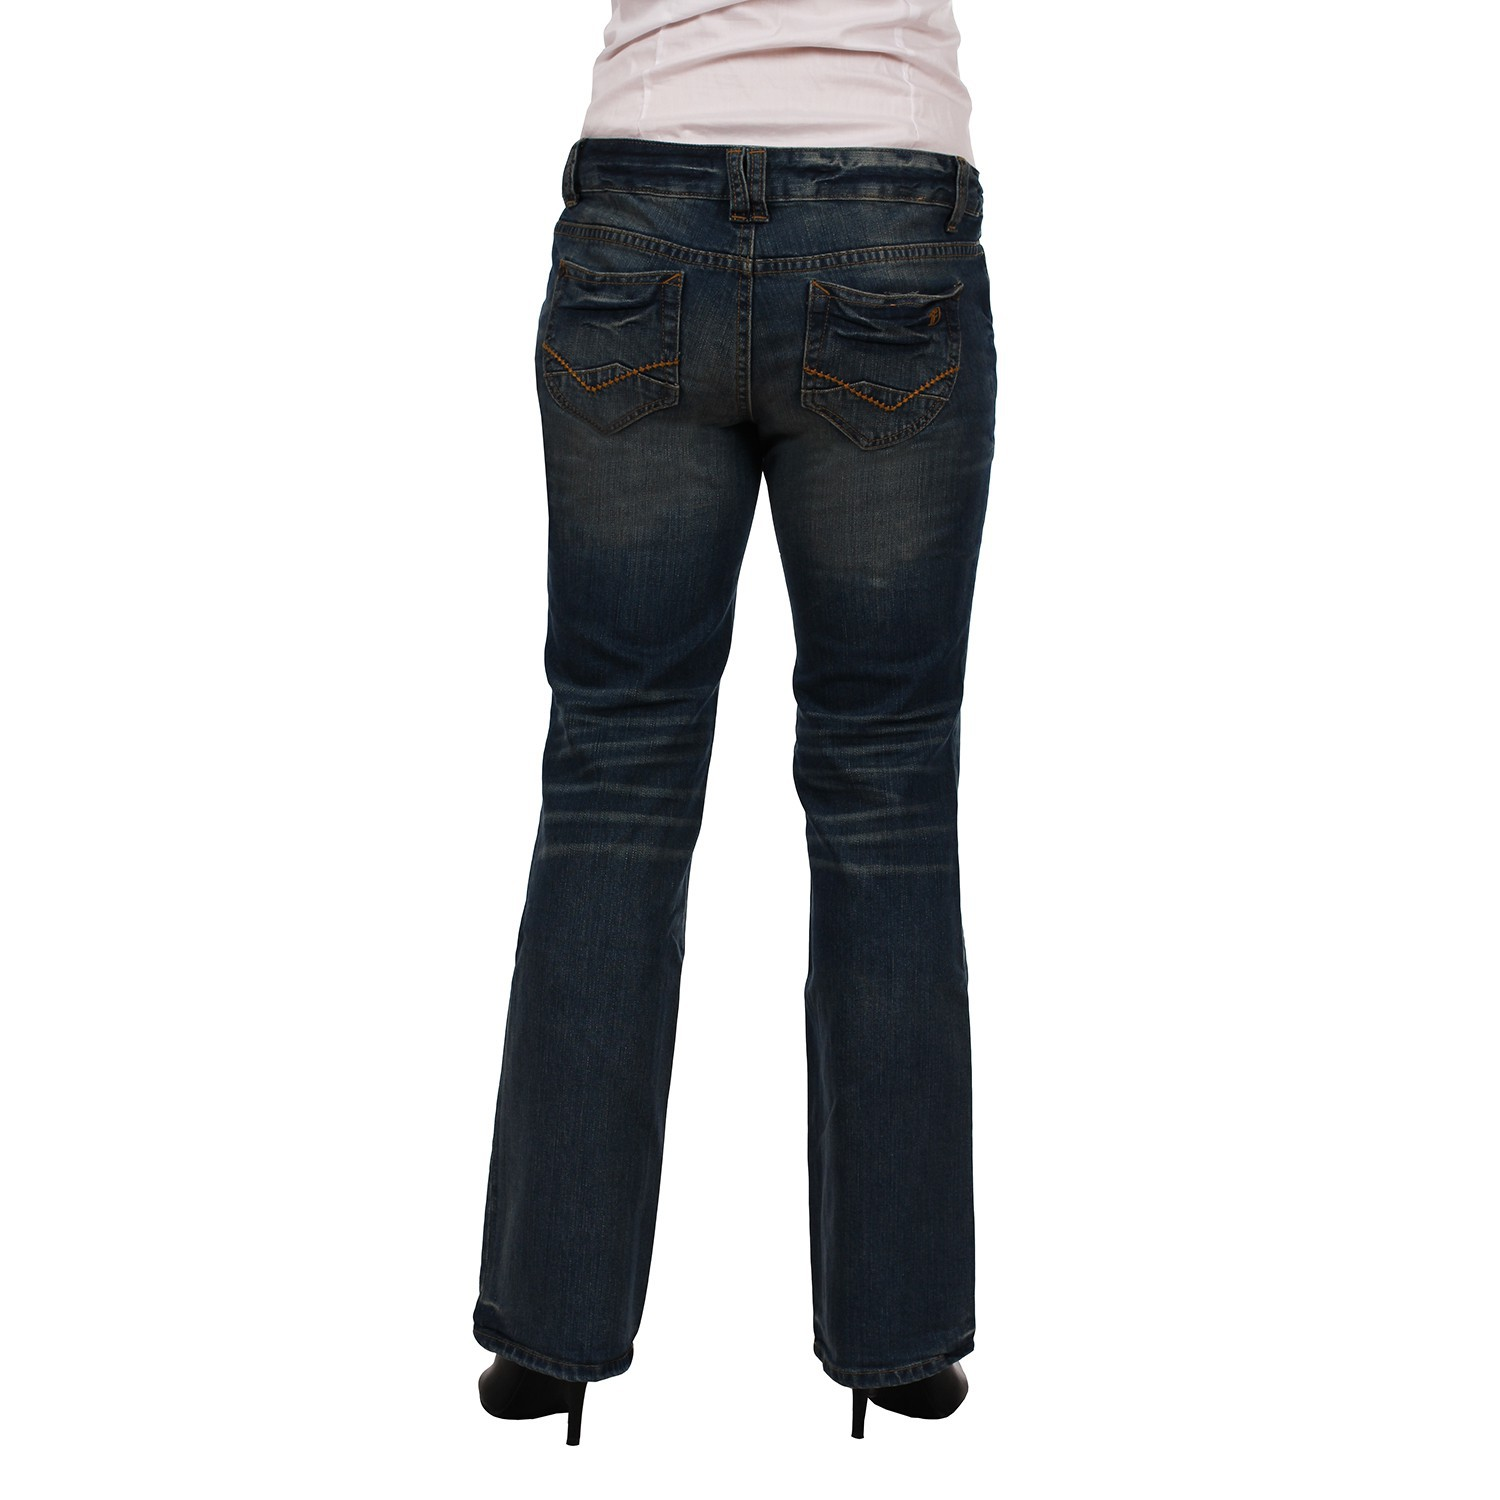 Tom tailor jeans bootcut comfort